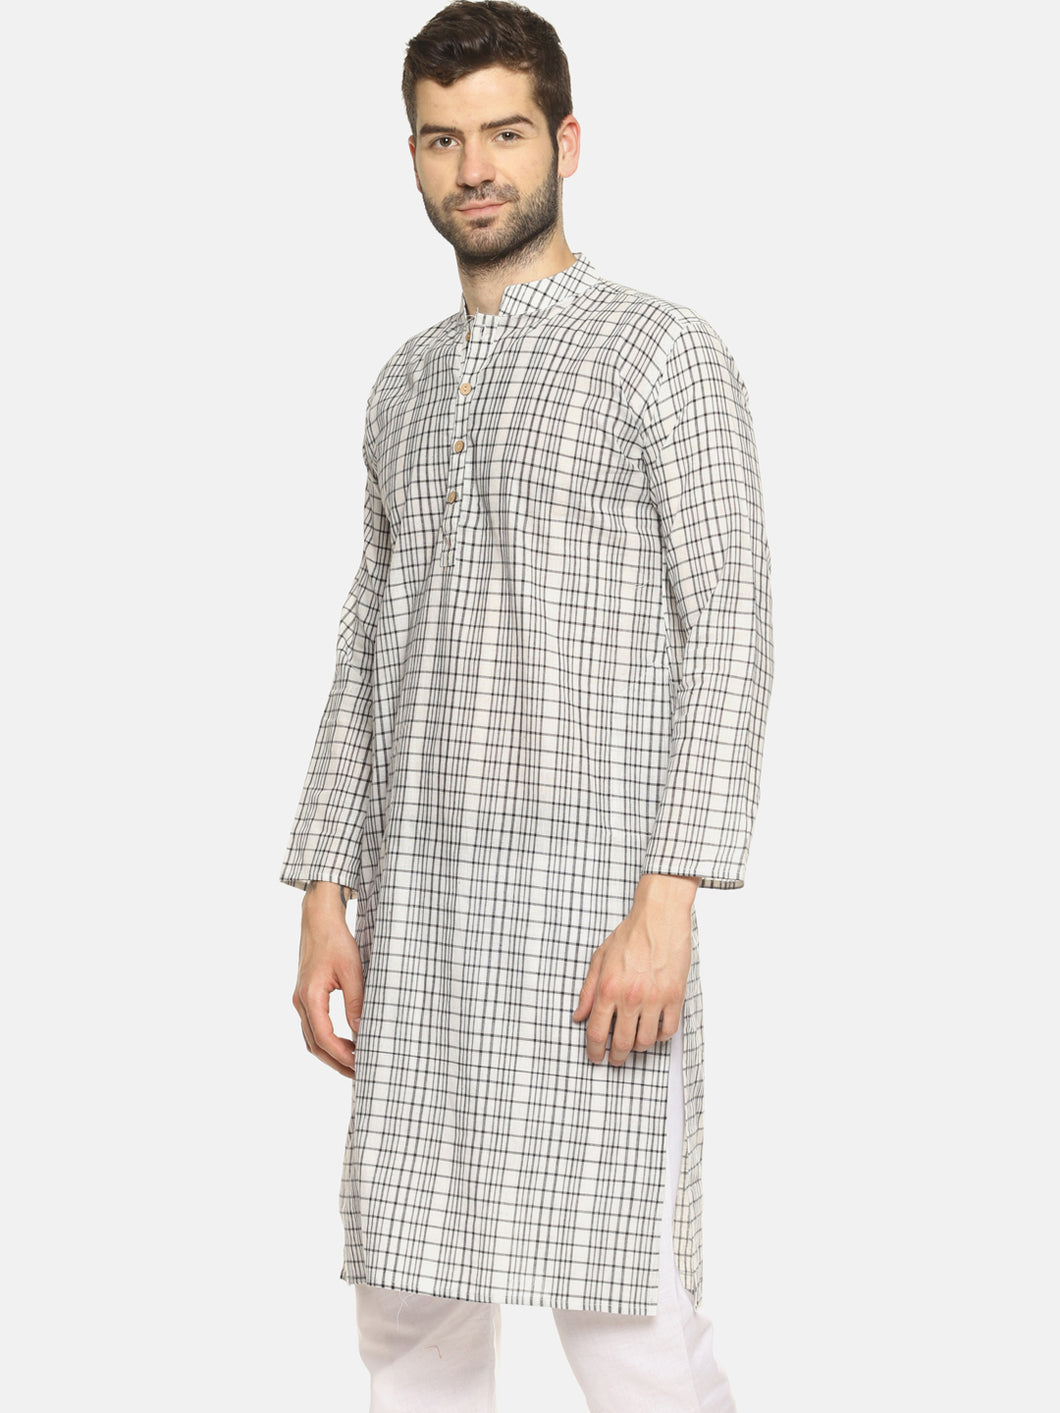 PAROKSH Men checkered white cotton Straight Kurta